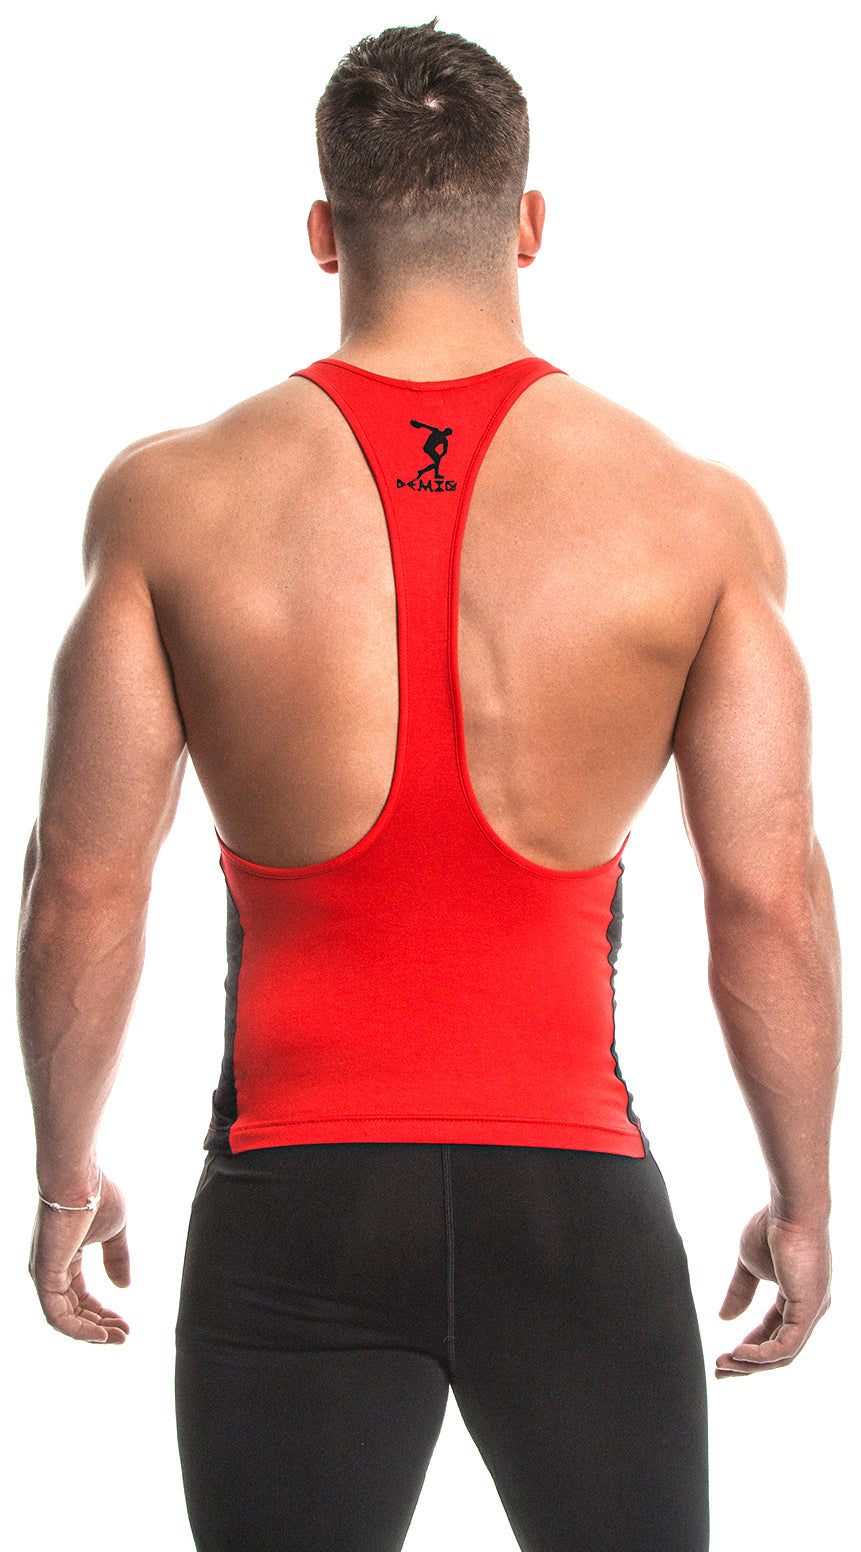 Tank Top (Red/Black) - Bamboo/Elastin Fiber - DEMIG